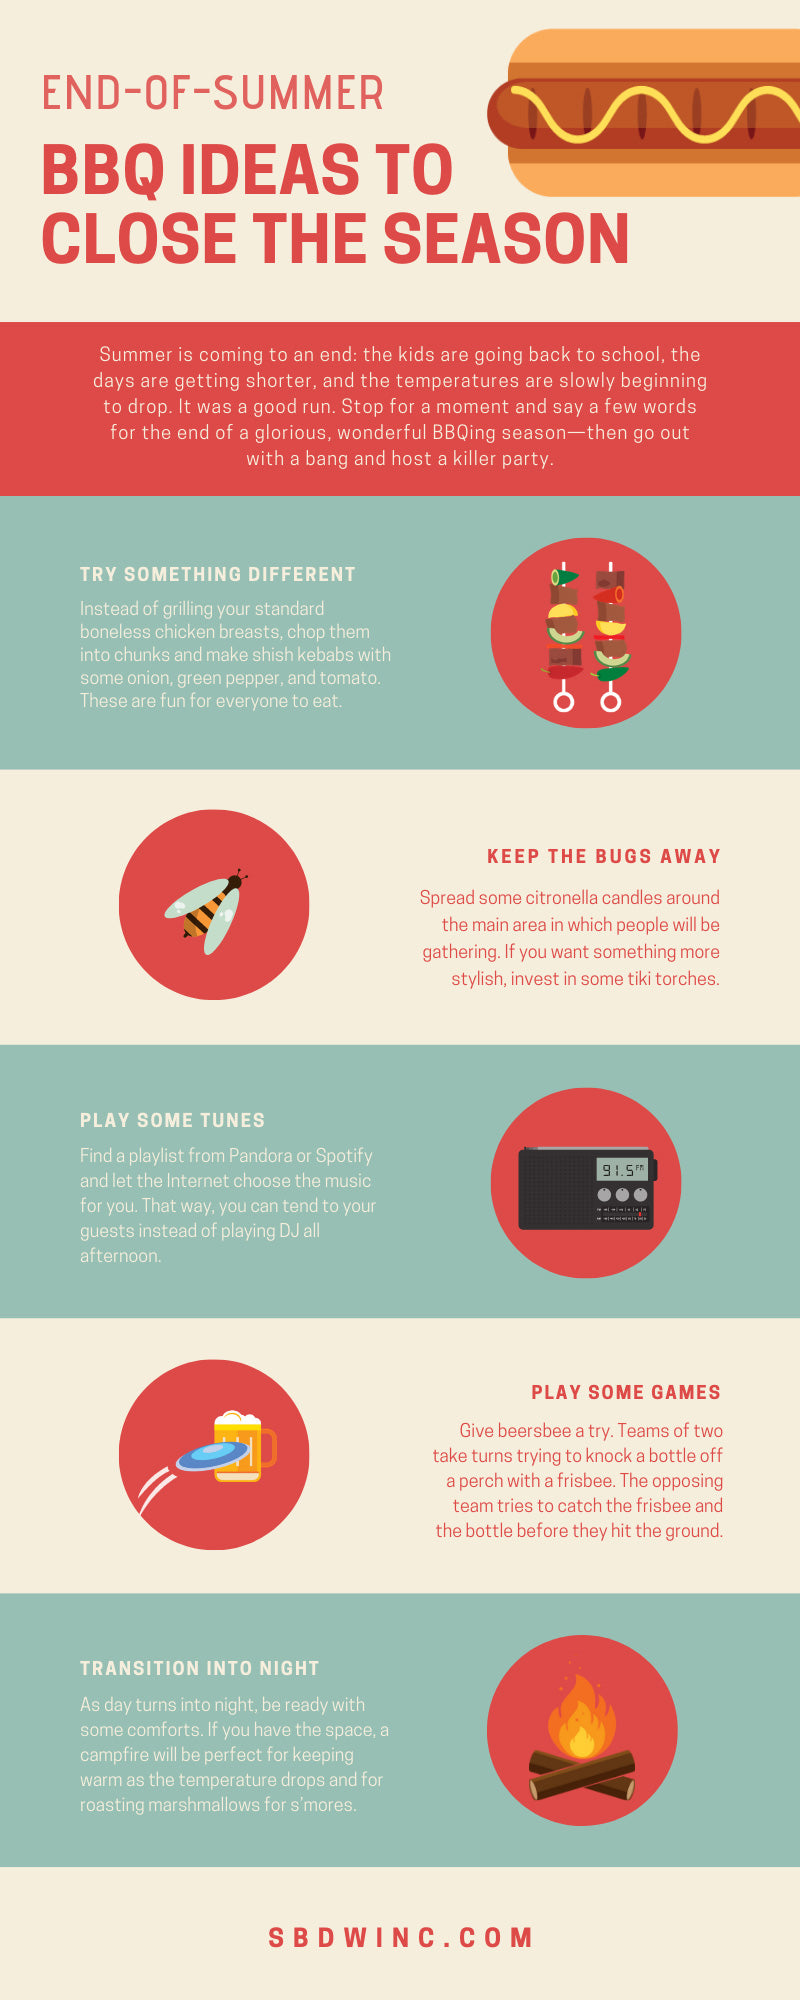 End-of-Summer BBQ Ideas to Close the Season infographic